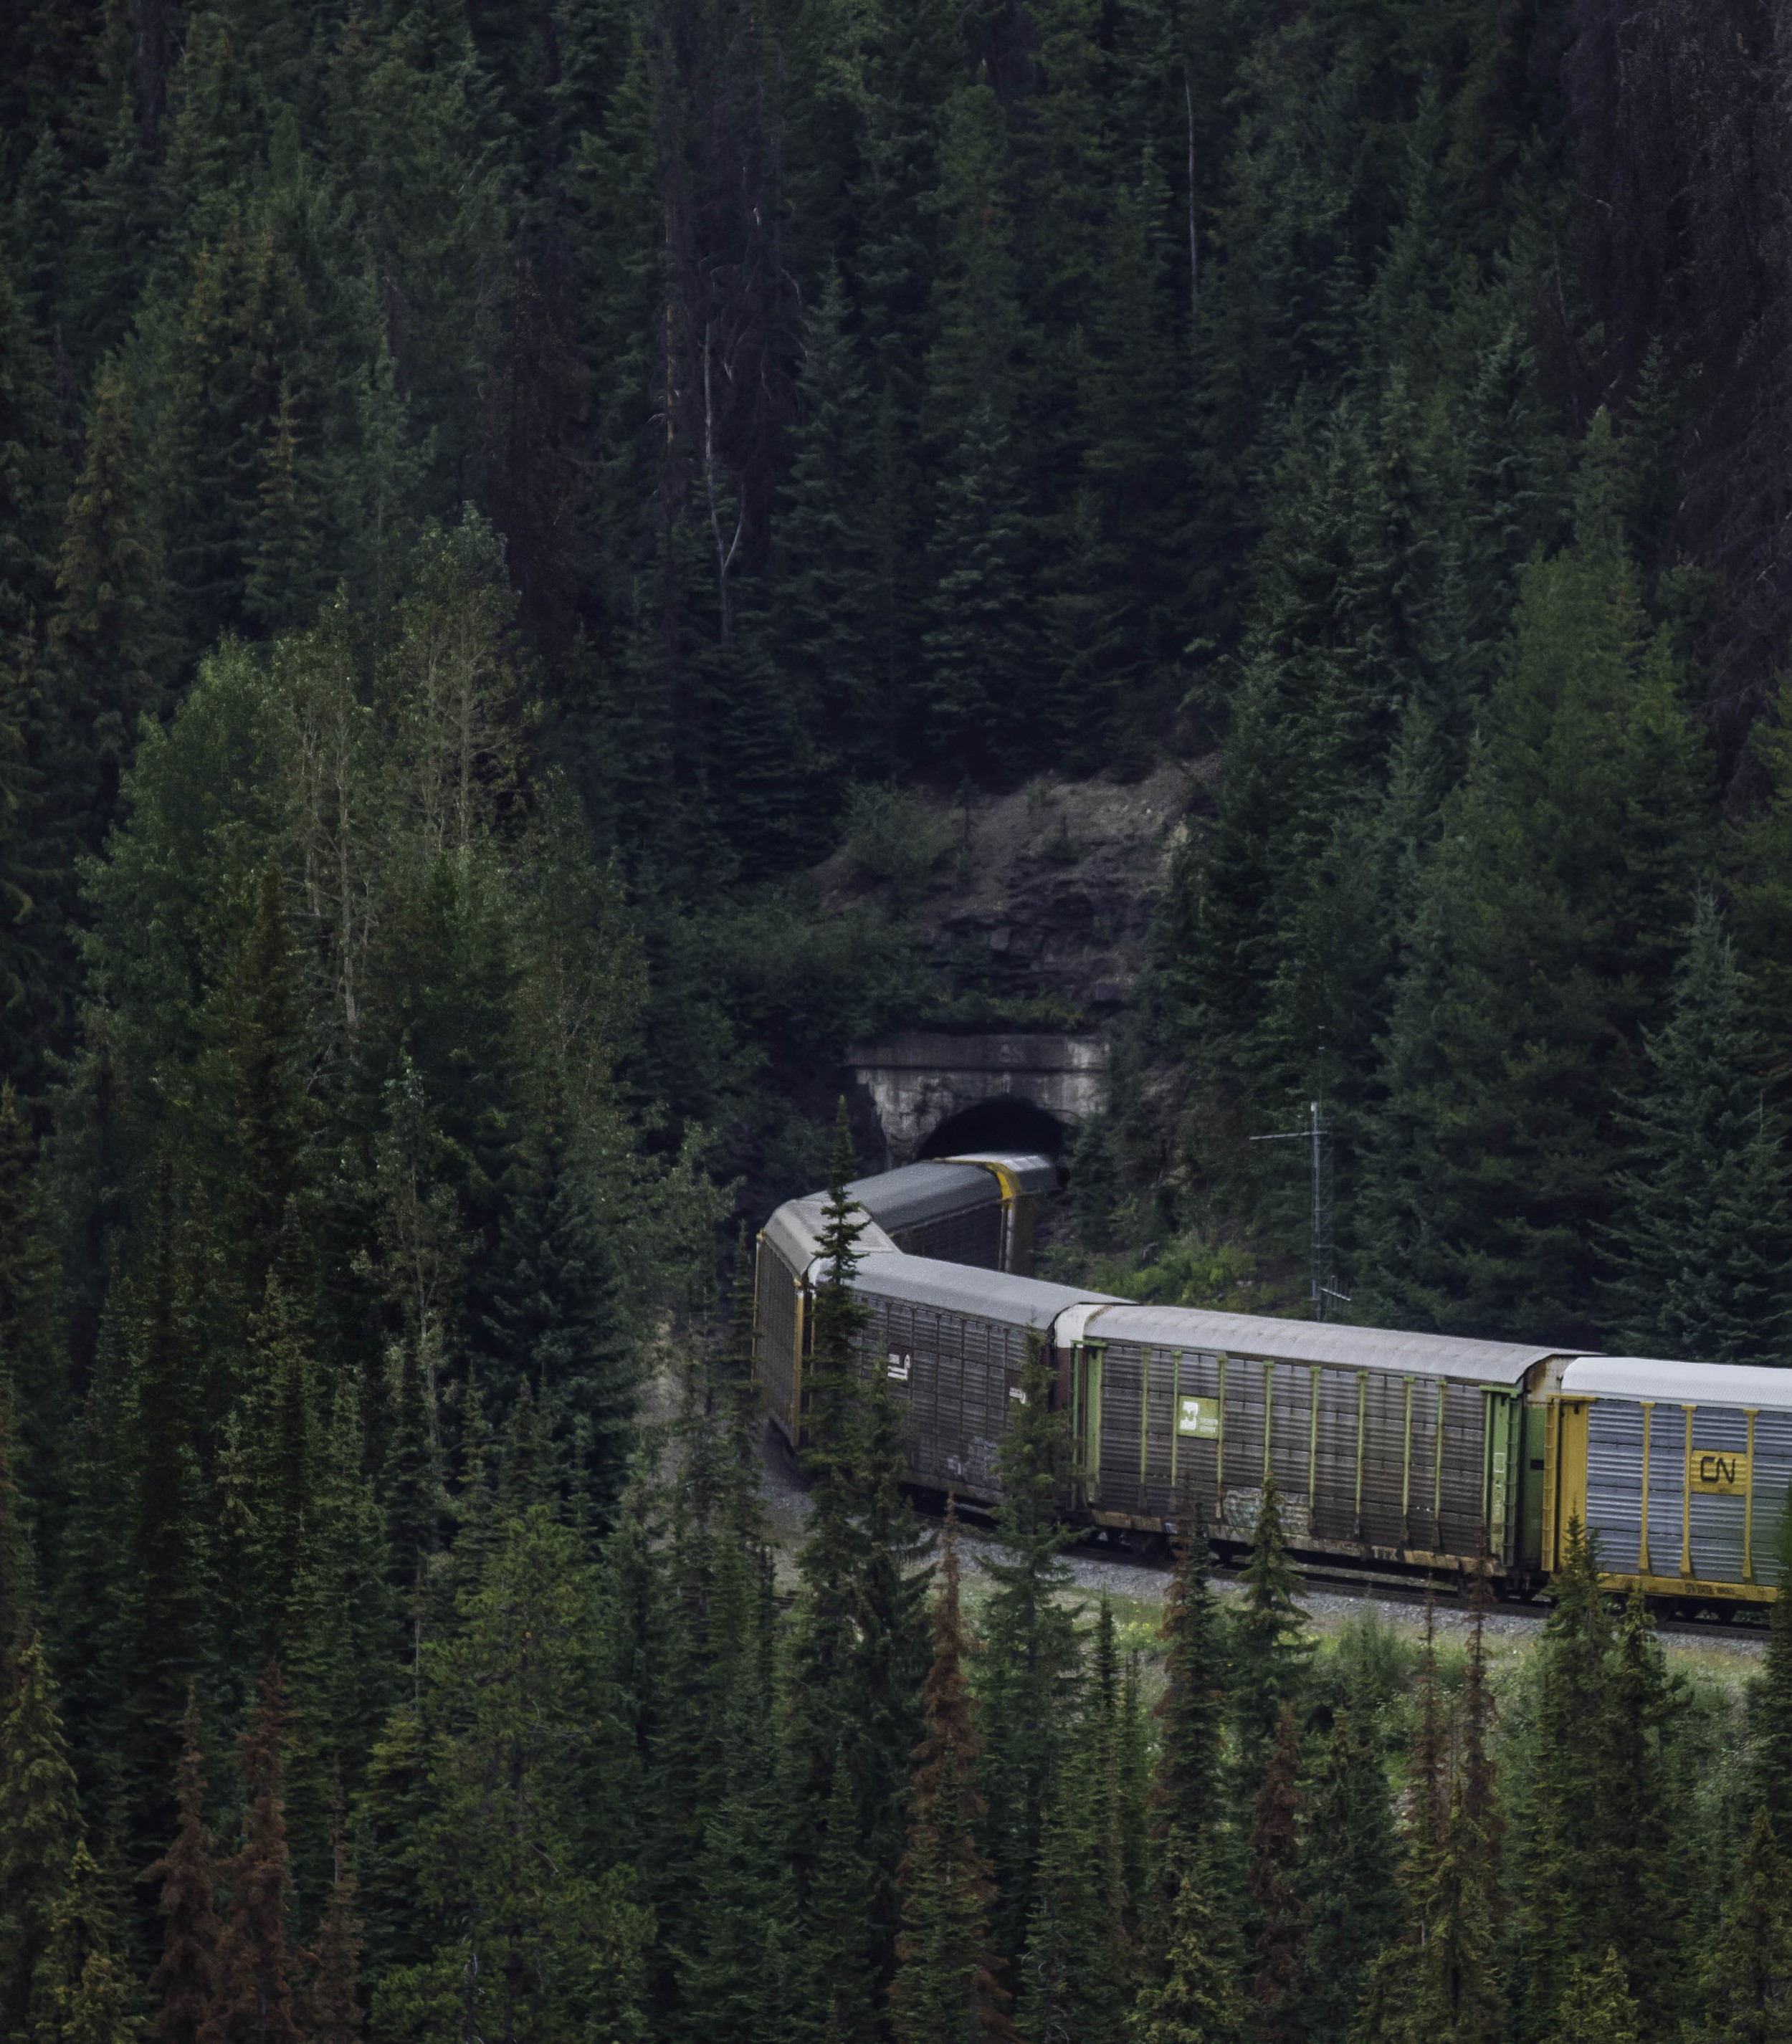 Train crosses the Big Hill through one of two 280 degree tunnels on the Canadian Pacific railroad